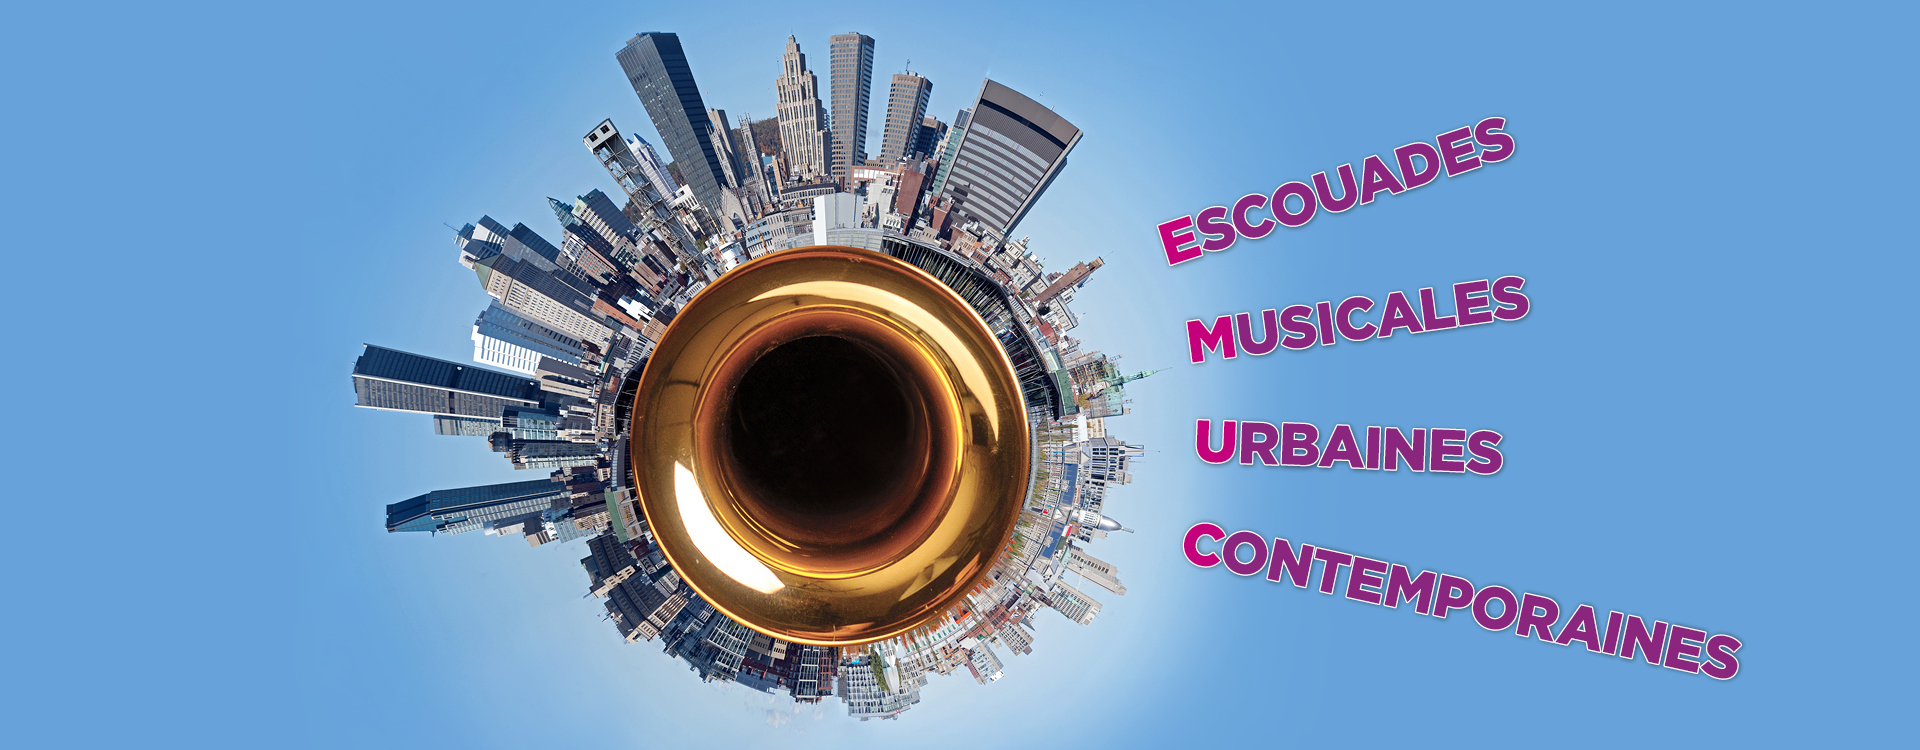 Banner for the project Escouades Musicales Urbaines Contemporaines